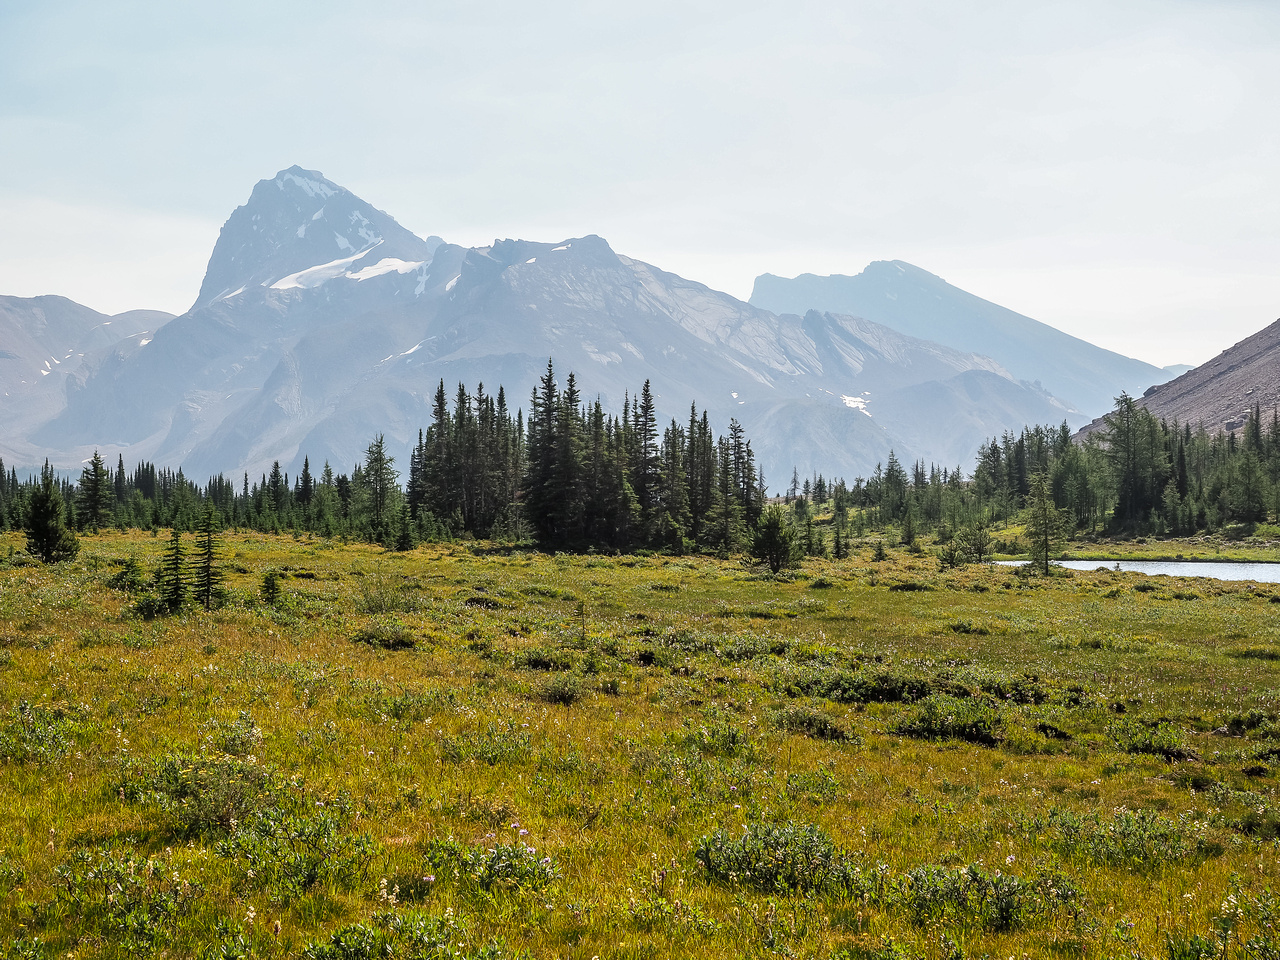 The view of Cataract (L) and Mount McConnell from the meadows around Fish Lakes.